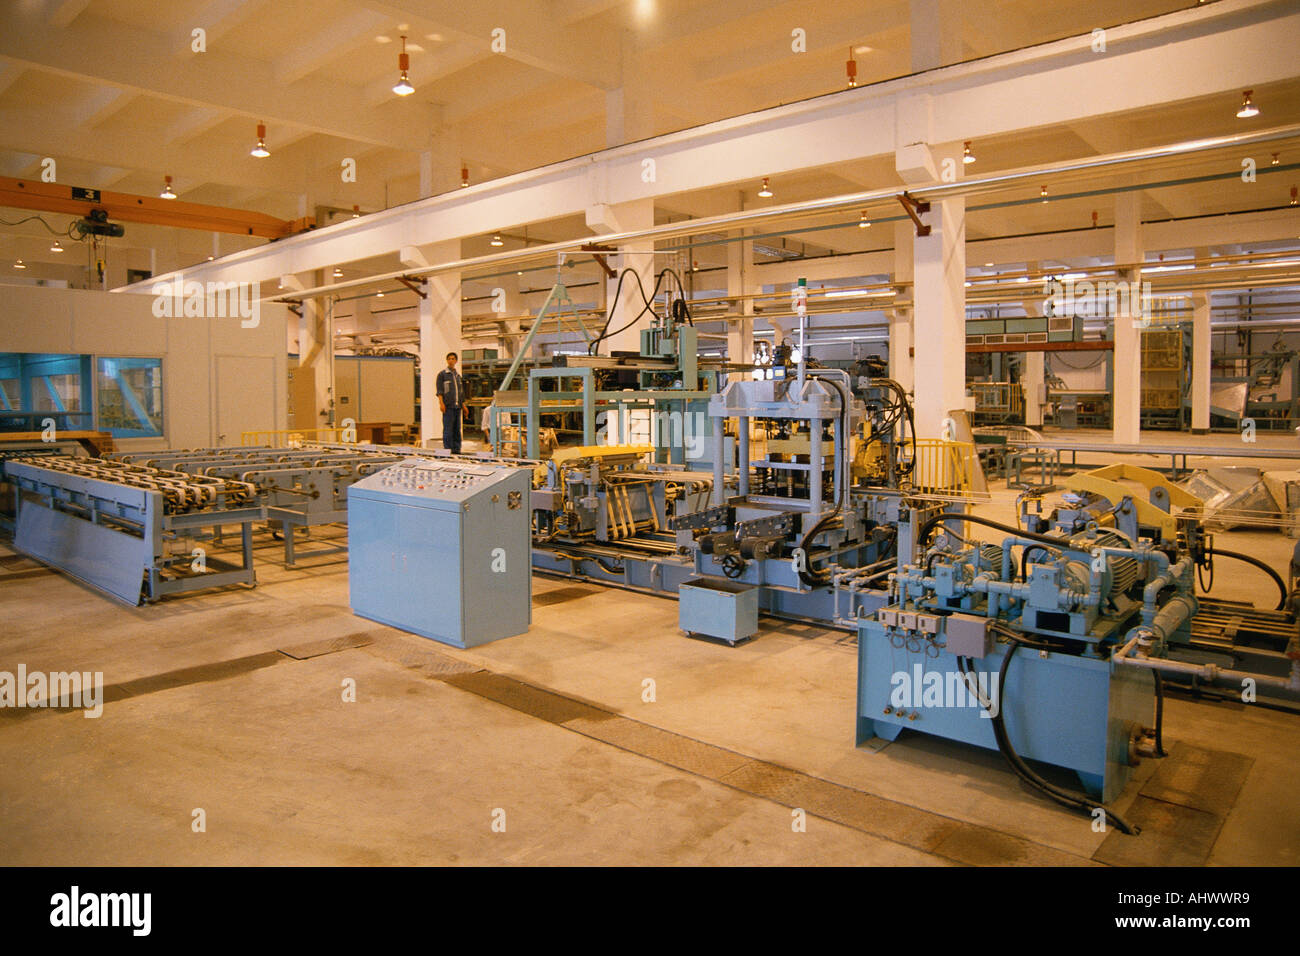 Assembly line in appliance factory - Stock Image